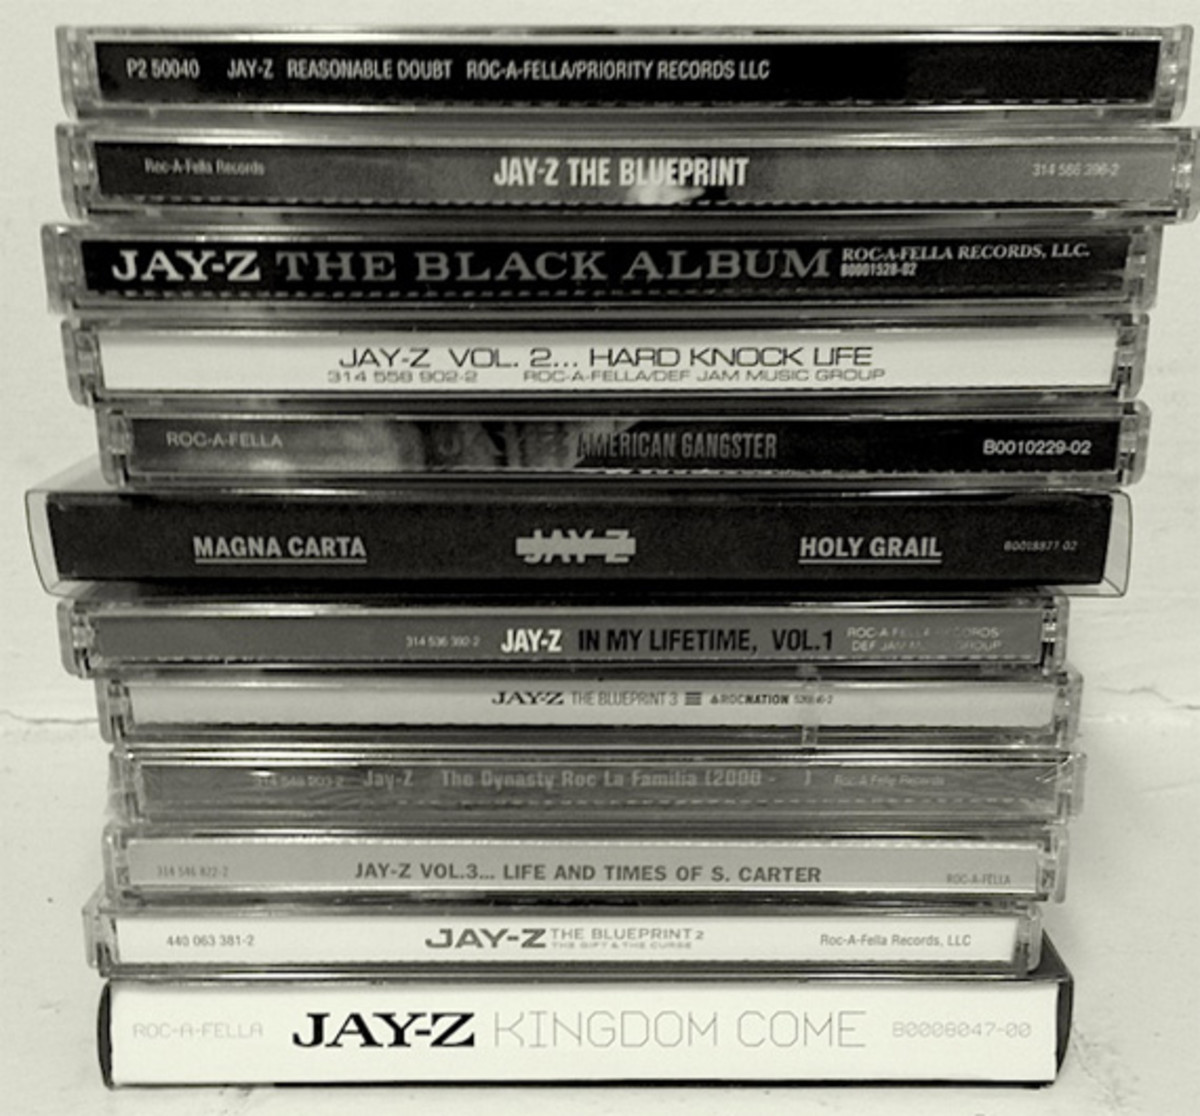 Jay z ranks his solo albums to celebrate 44th birthday freshness mag just like the rest of us jay z is utilizing his birthday as a time for self reflection turning 44 young today the brooklyn native hip hop mogul and malvernweather Images